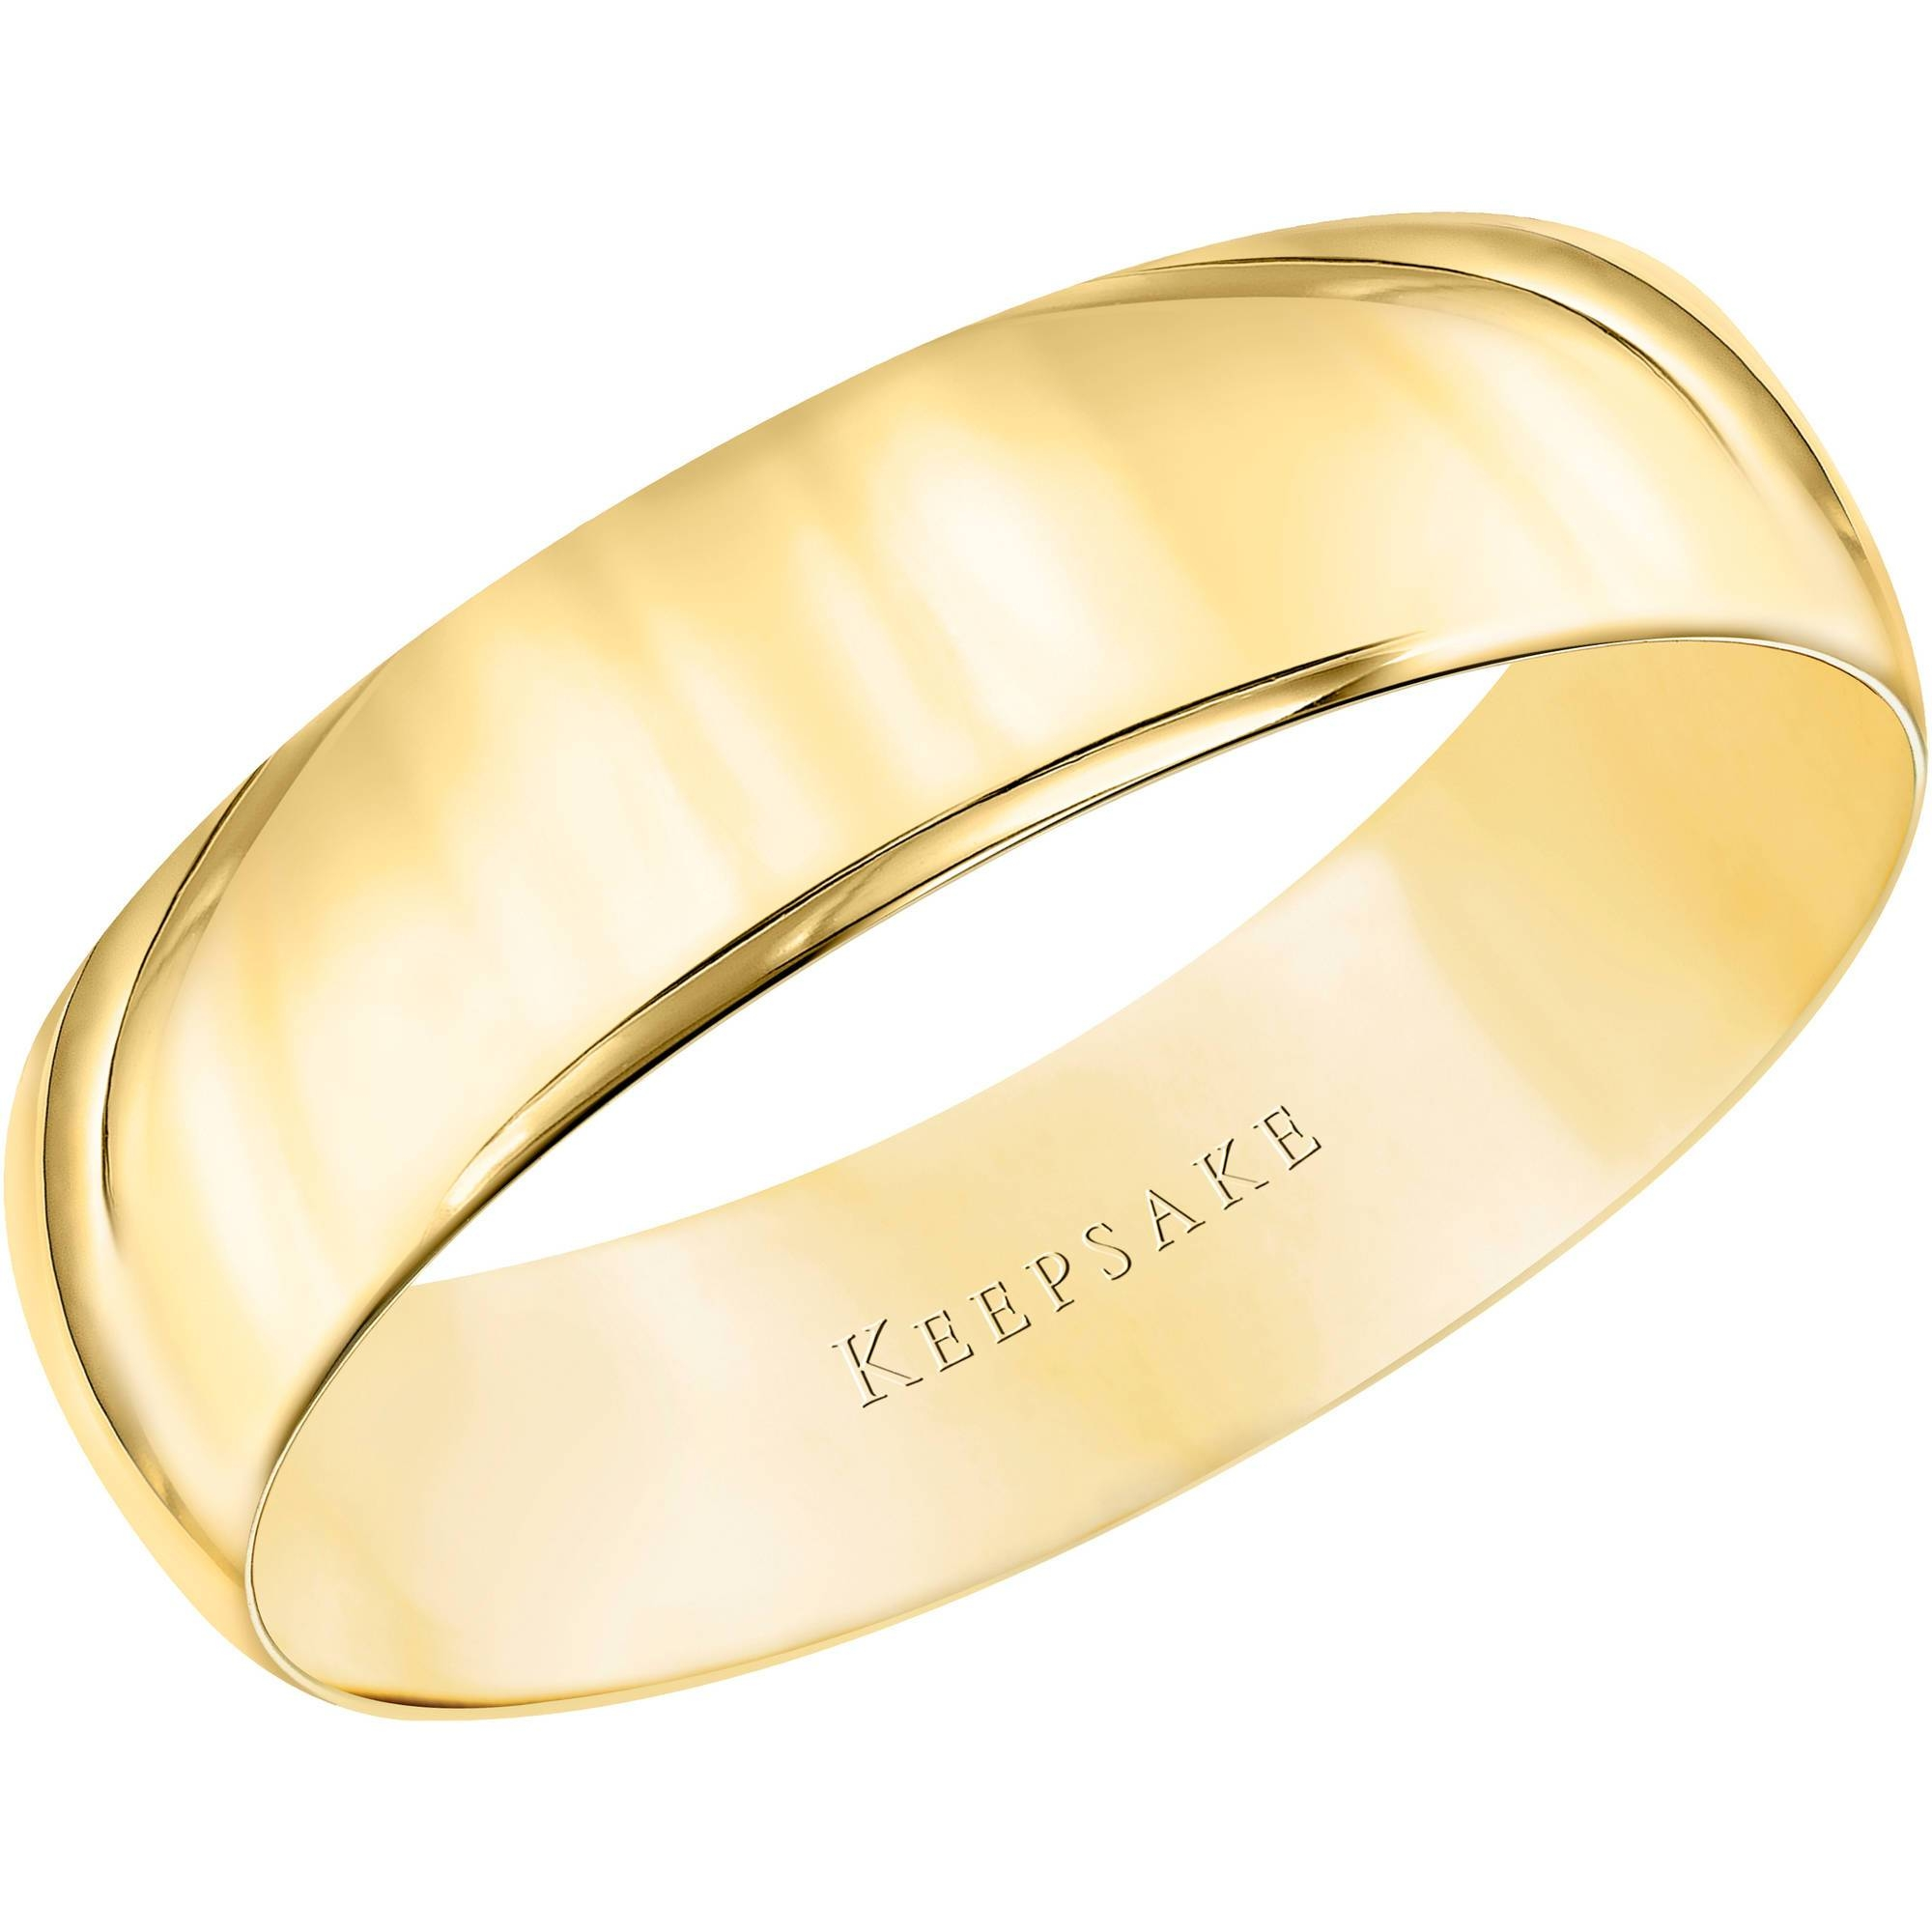 Keepsake 10kt Yellow Gold Wedding Band With High Polish Finish Throughout Keepsake Wedding Bands (View 1 of 15)